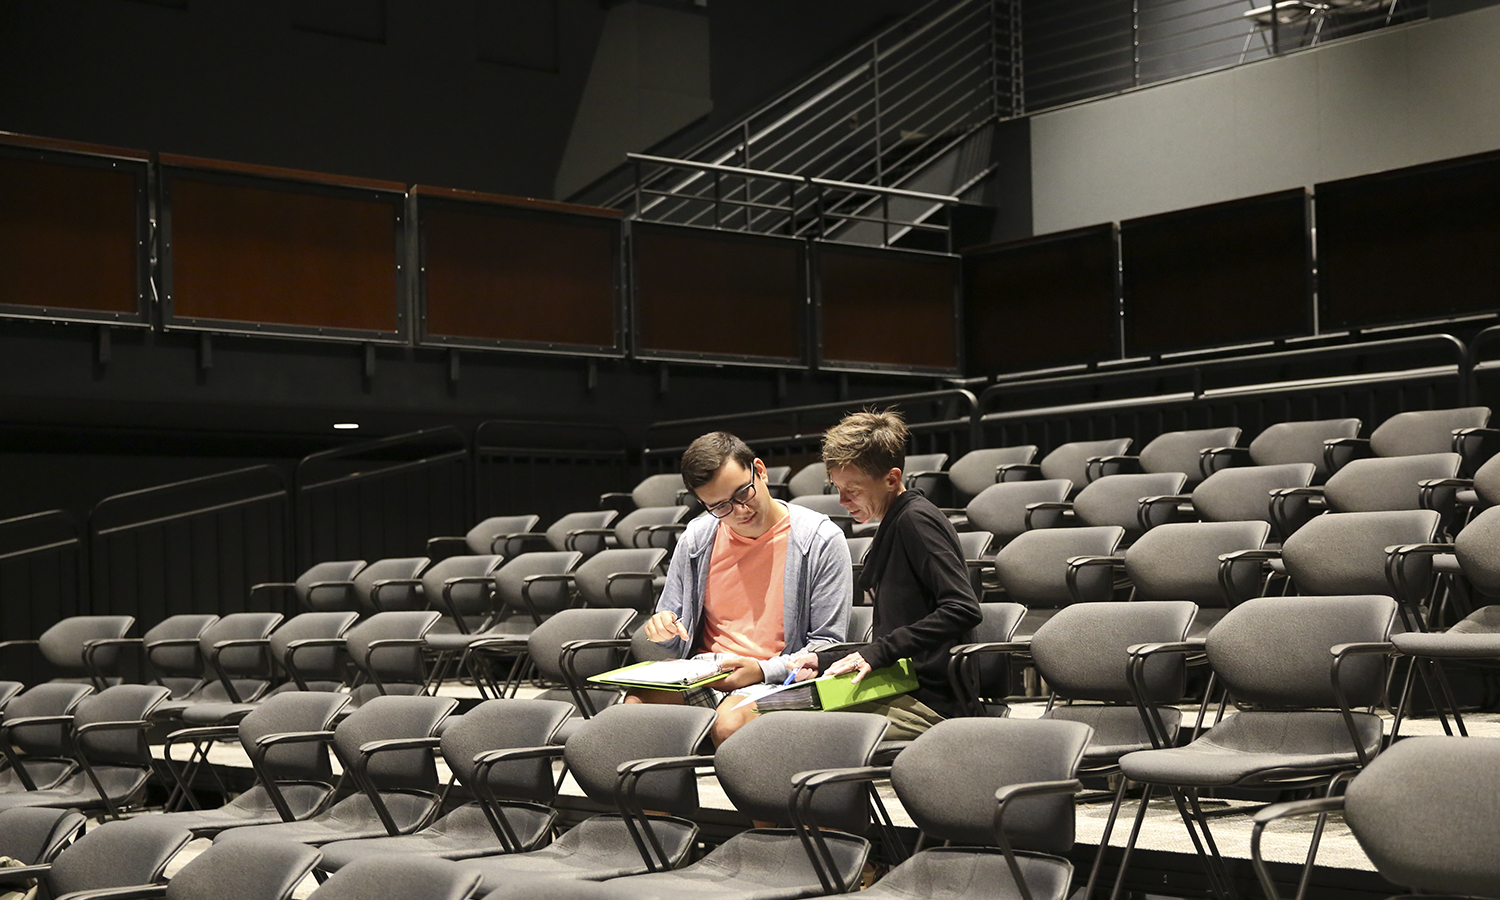 Luis Figueroa '18 and Associate Professor of Theatre Heather May discuss upcoming programming after rehearsal. As part of ongoing support of local youth, the HWS theatre troupe Mosaic NY will offer social justice theatre programing to members of the Justice Organization for Youth (JOY) with the establishment of the Mosaic NY Fellowship this year. Figueroa will serve as the inaugural Mosaic NY Fellow.